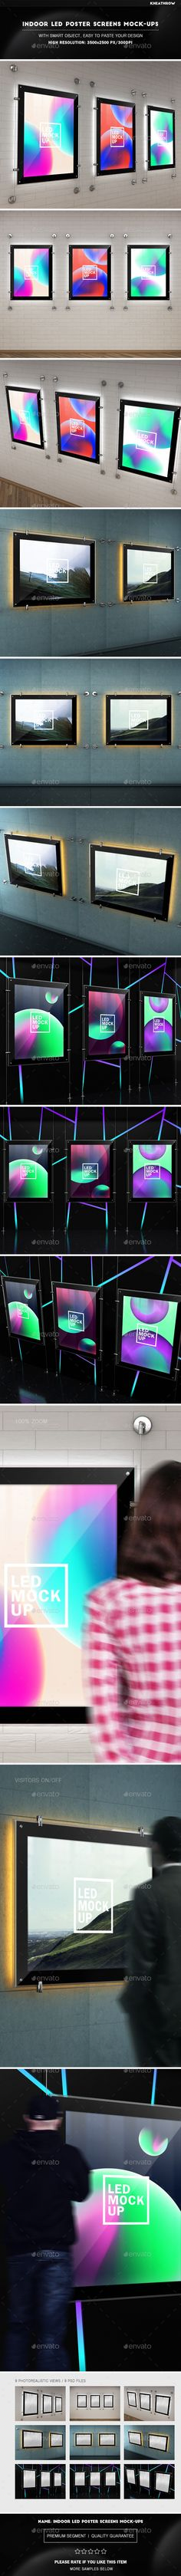 Indoor Led Poster Screens MockUps — Photoshop PSD #professional #presentation • Available here → https://graphicriver.net/item/indoor-advertizing-led-poster-screens-mockups/12050683?ref=pxcr